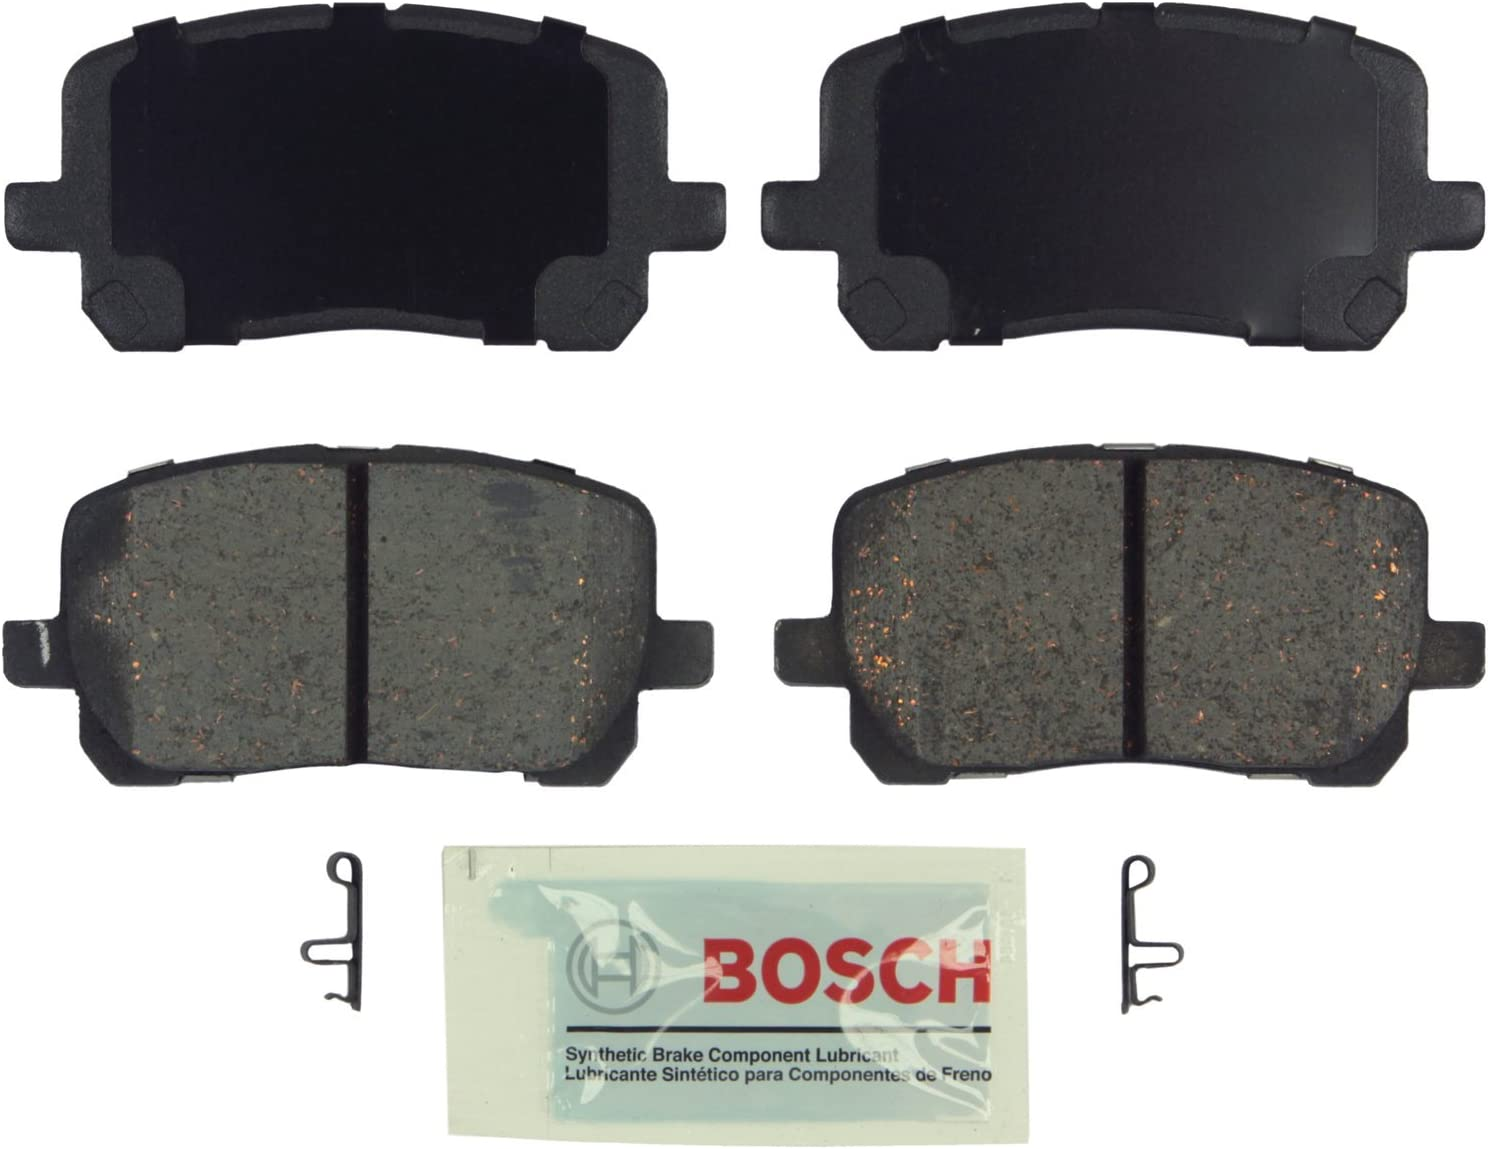 Ceramic Discs Brake Pads,SCITOO 4pcs Front Brake Pads fit for 2003 04 05 06 07 2008 Pontiac Vibe,2003 04 05 06 07 2008 Toyota Corolla,2003 04 05 06 07 2008 Toyota Matrix